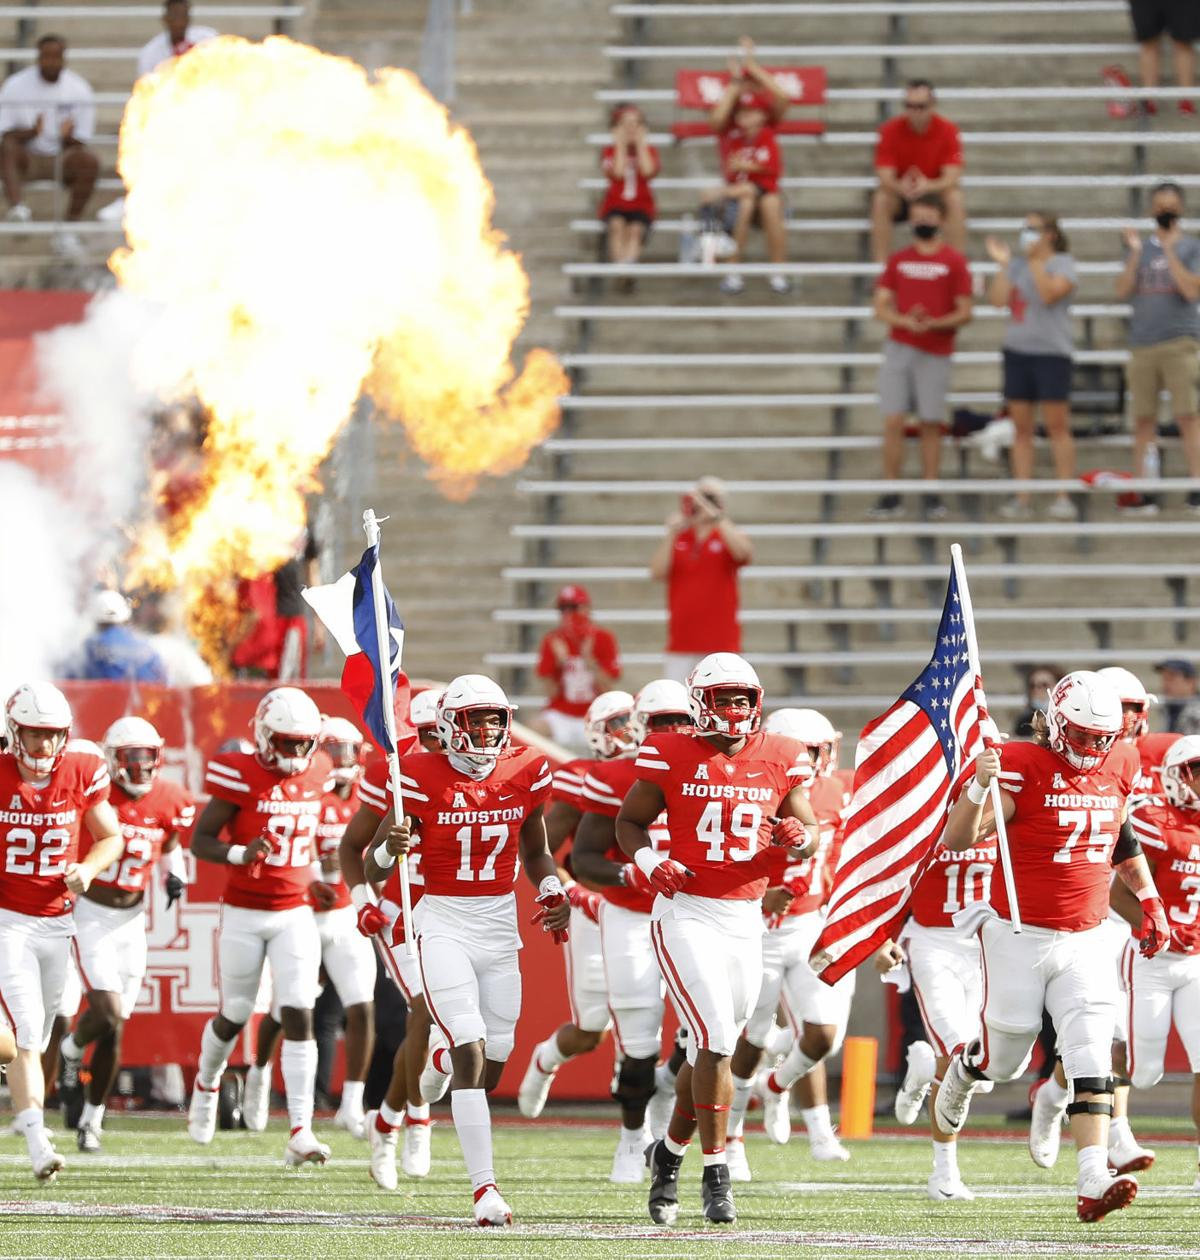 Houston Cougars vs. South Florida Bulls